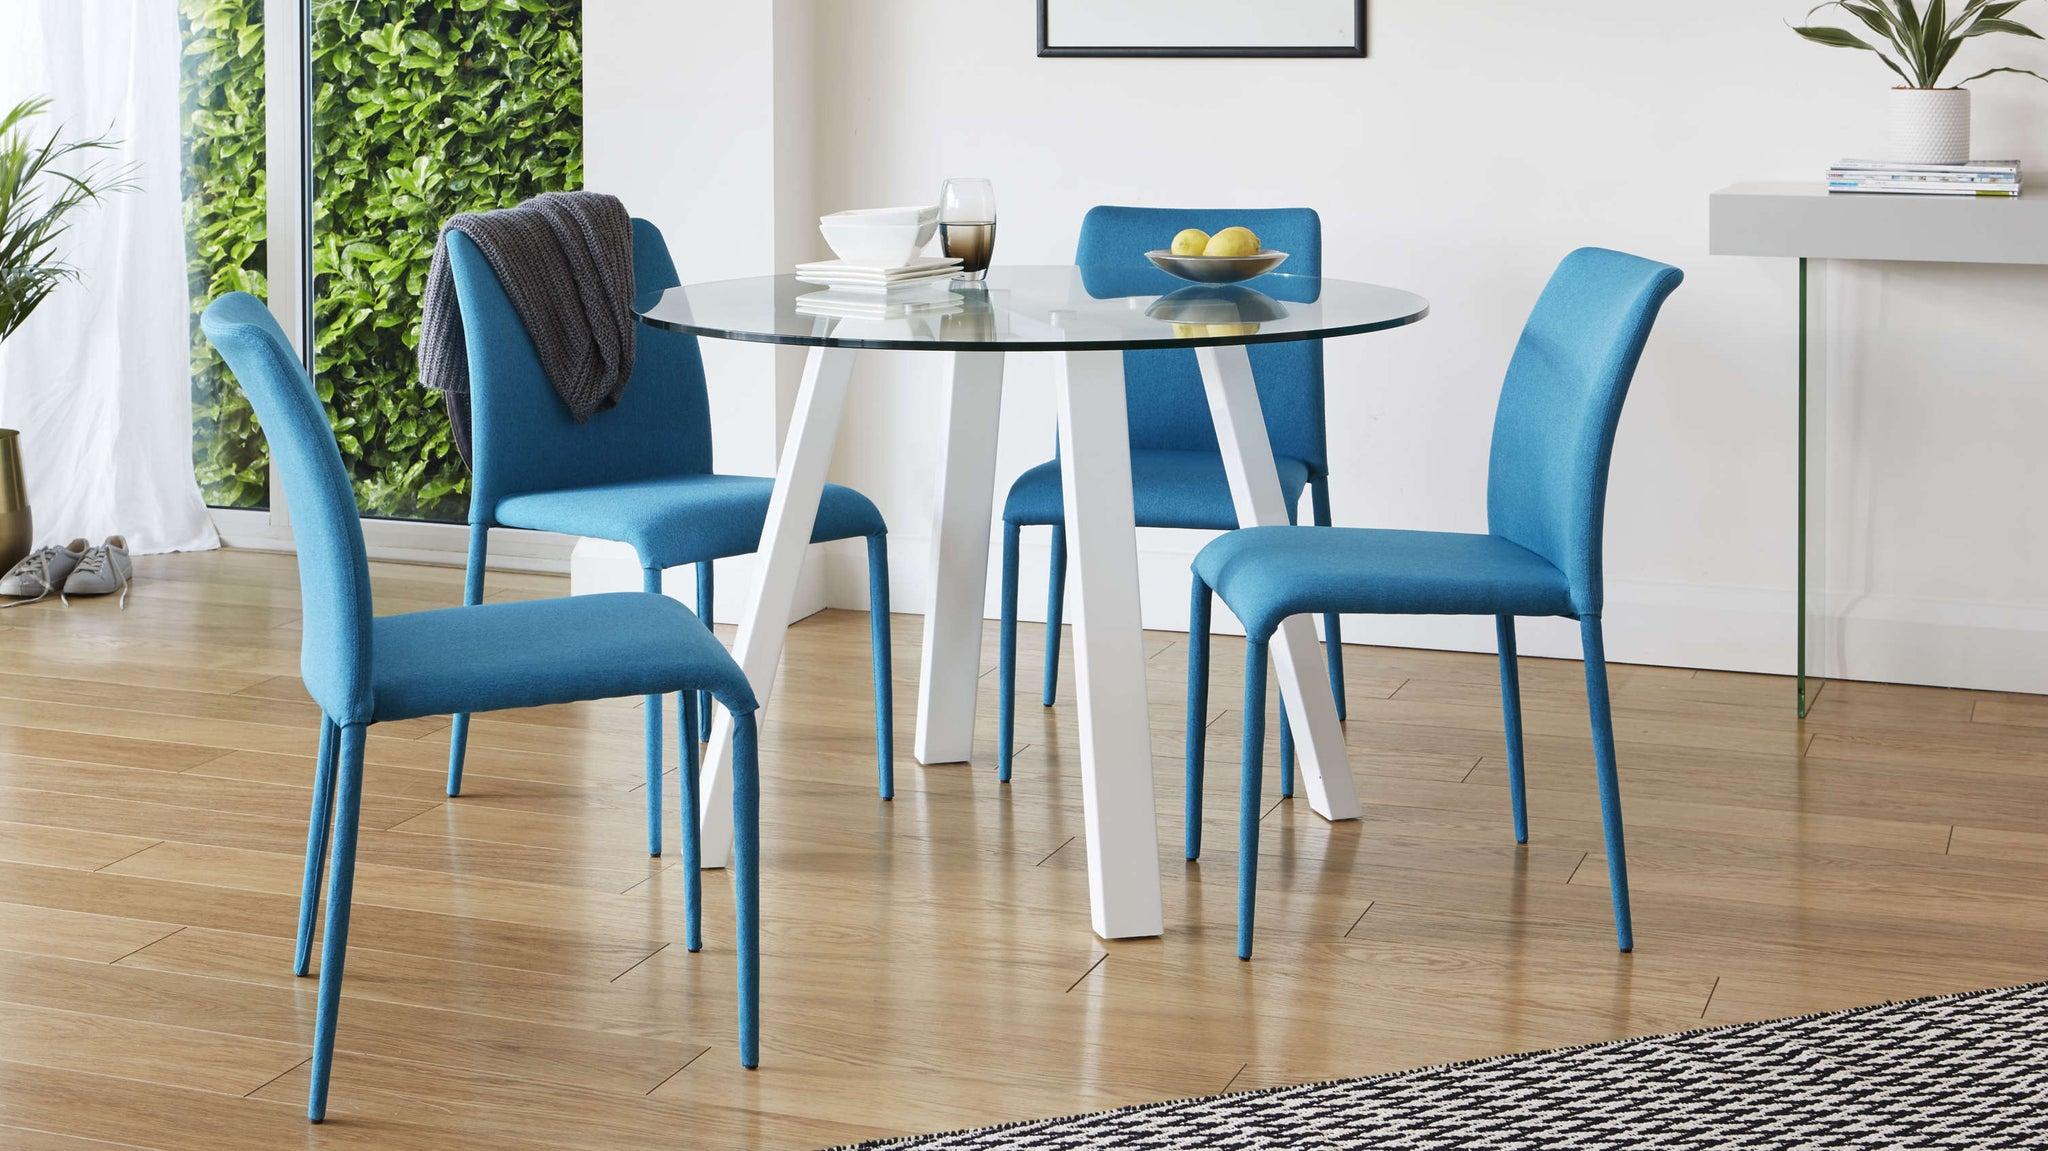 Bright fabric chair and glass table dining set